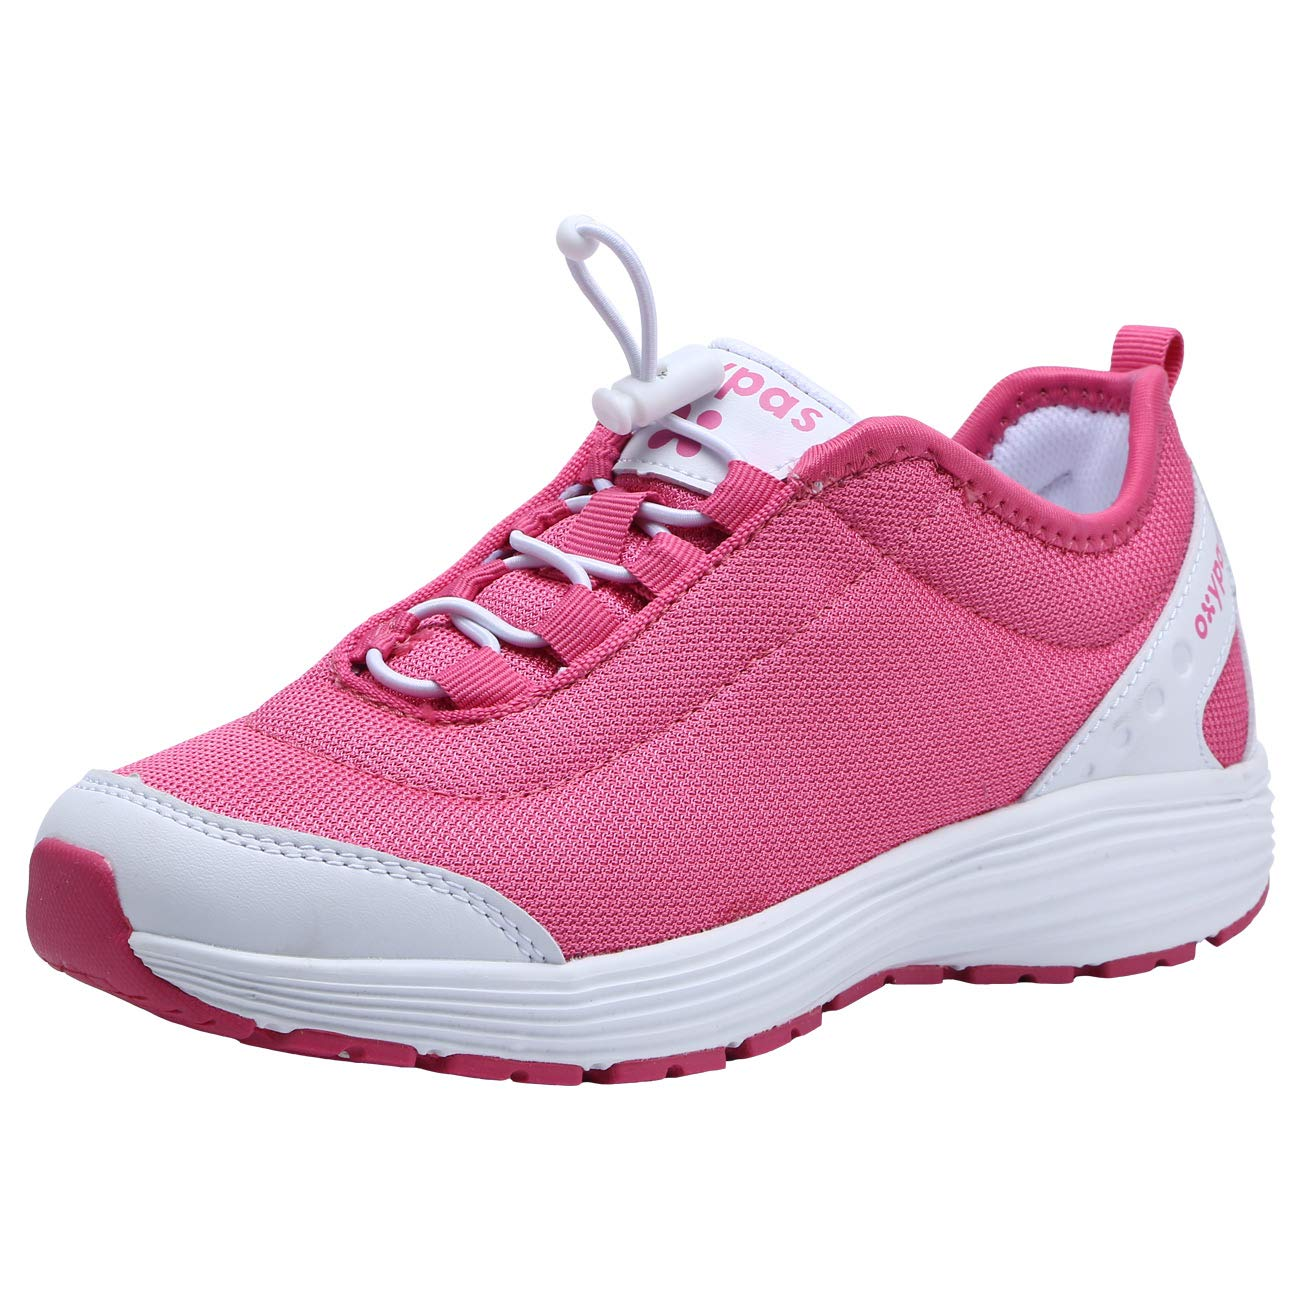 Dykhmily Womens Leather Work Shoes, Non-Slip Anti-Static Safety Shoes (8,Pink)